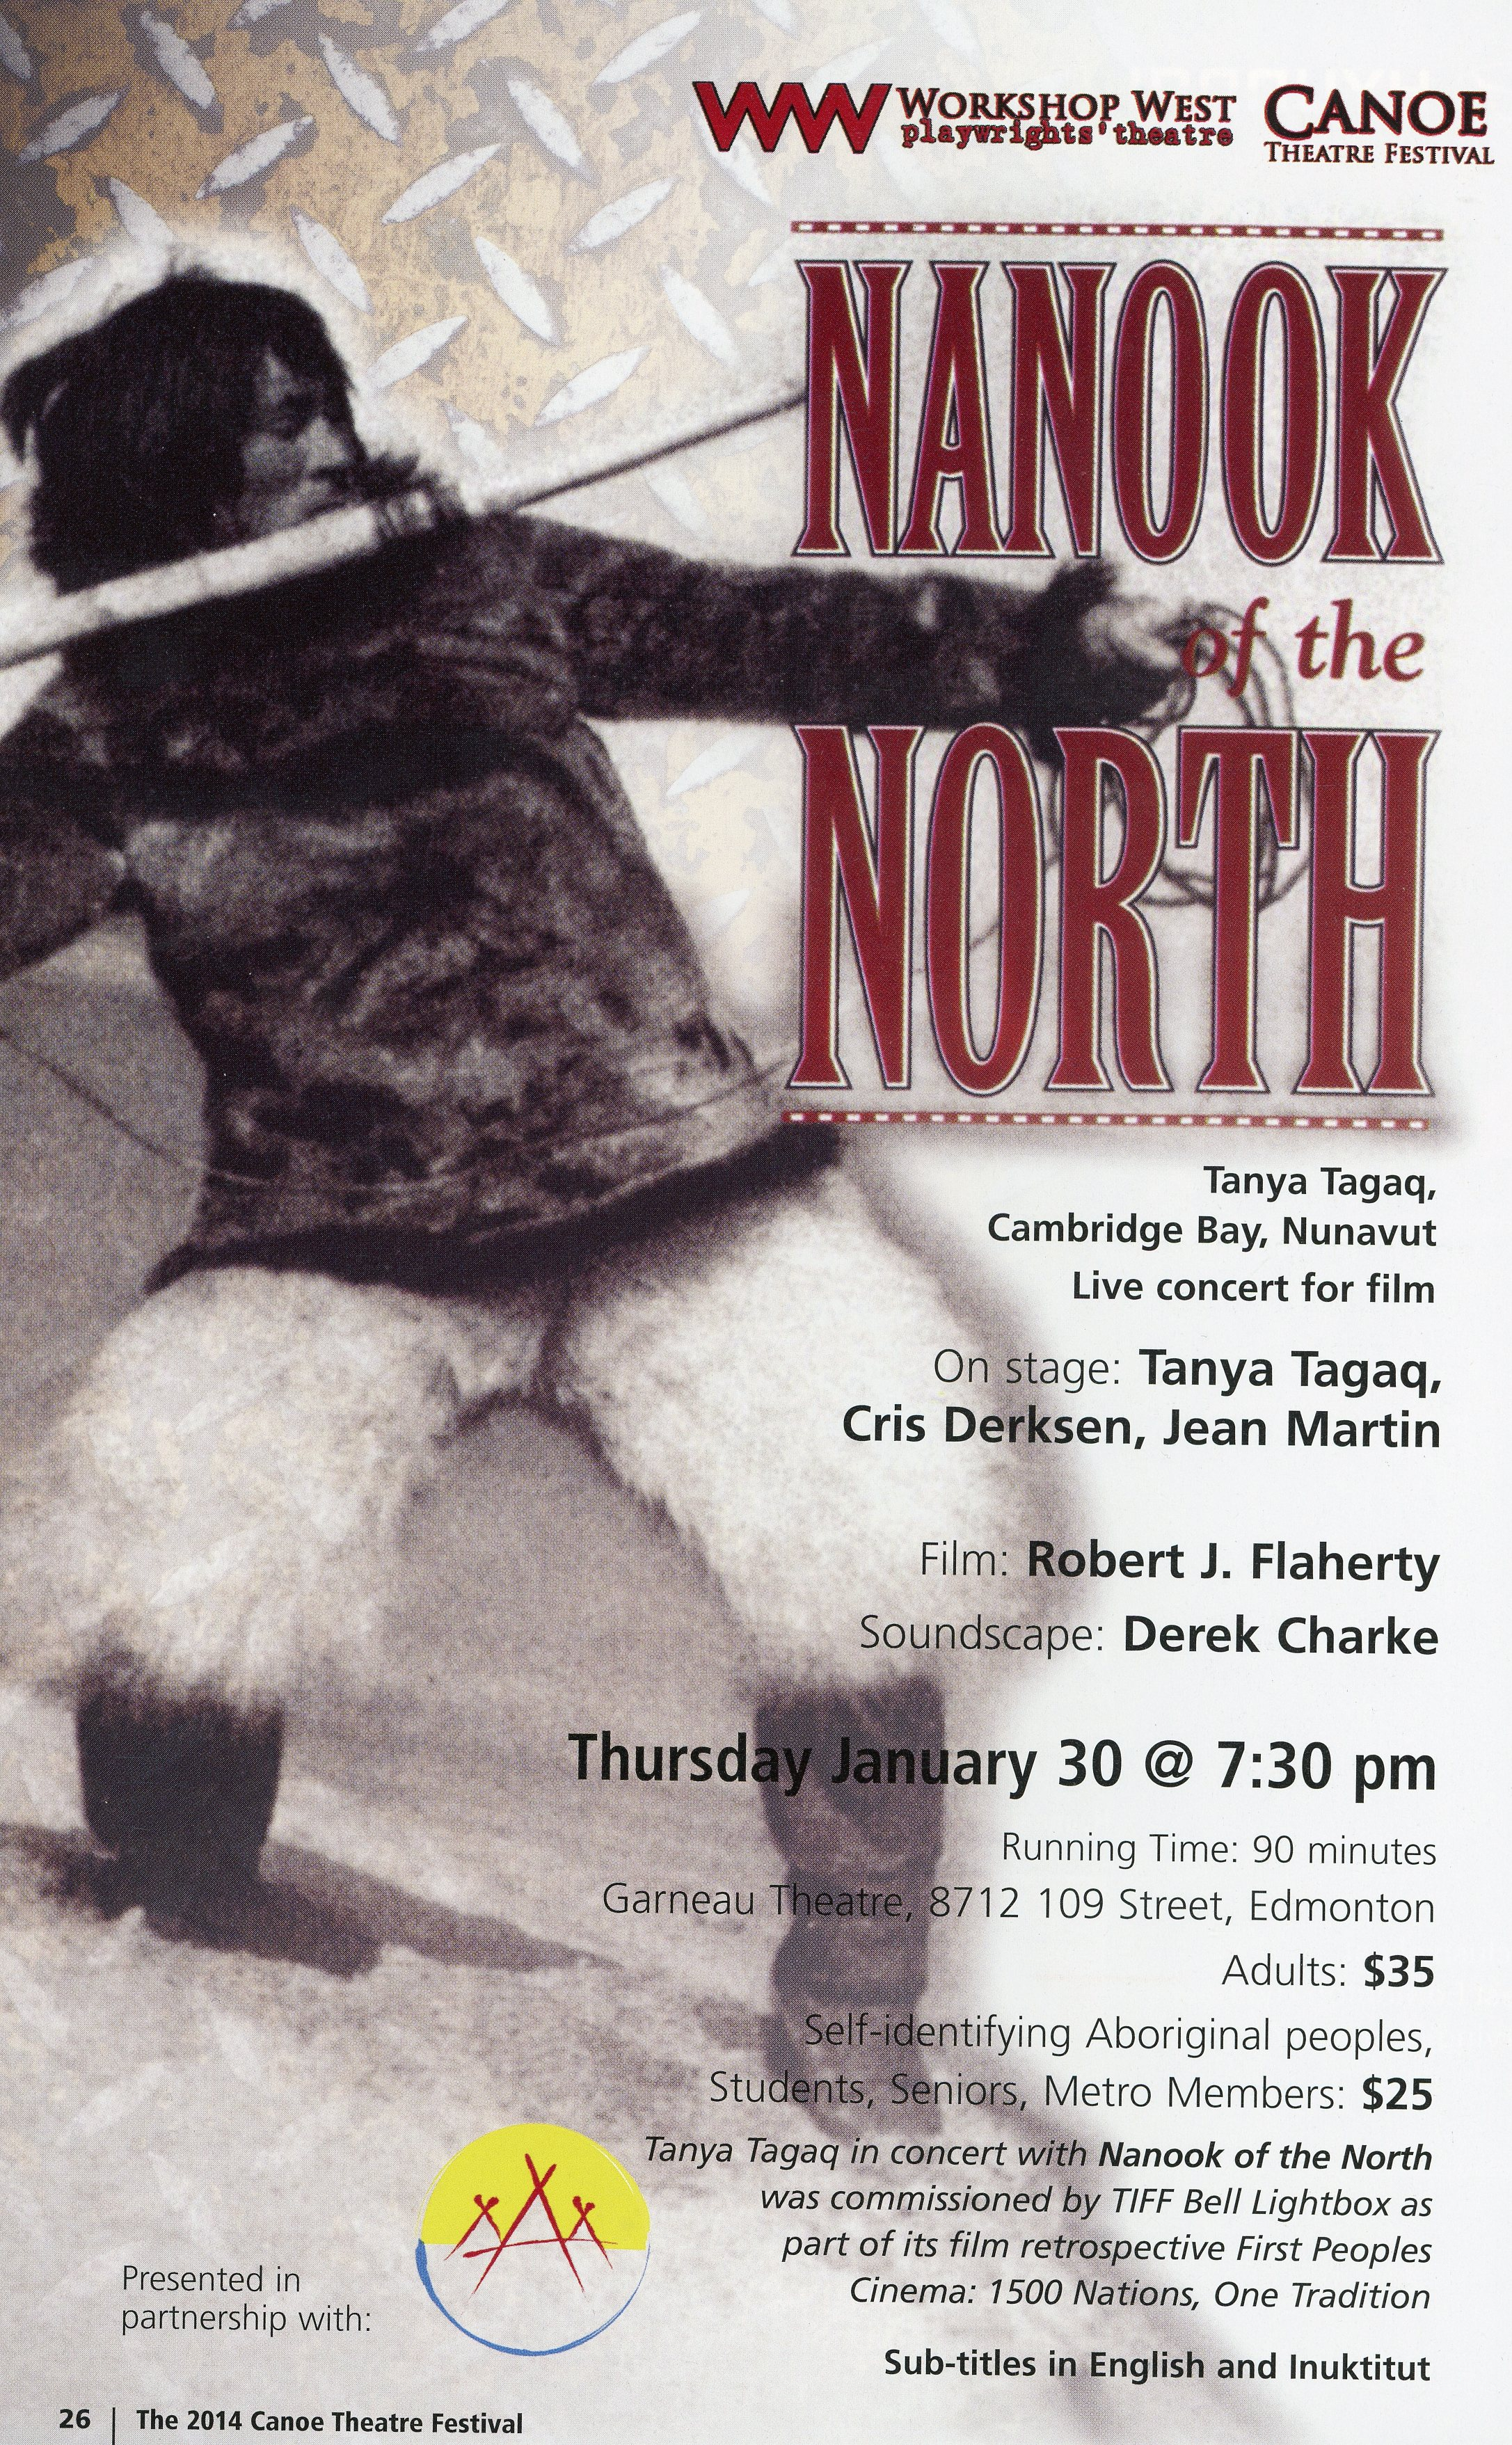 The Canoe Theatre Festival (January 2014)-Production Information-Nonook of the North_JPEG.jpg